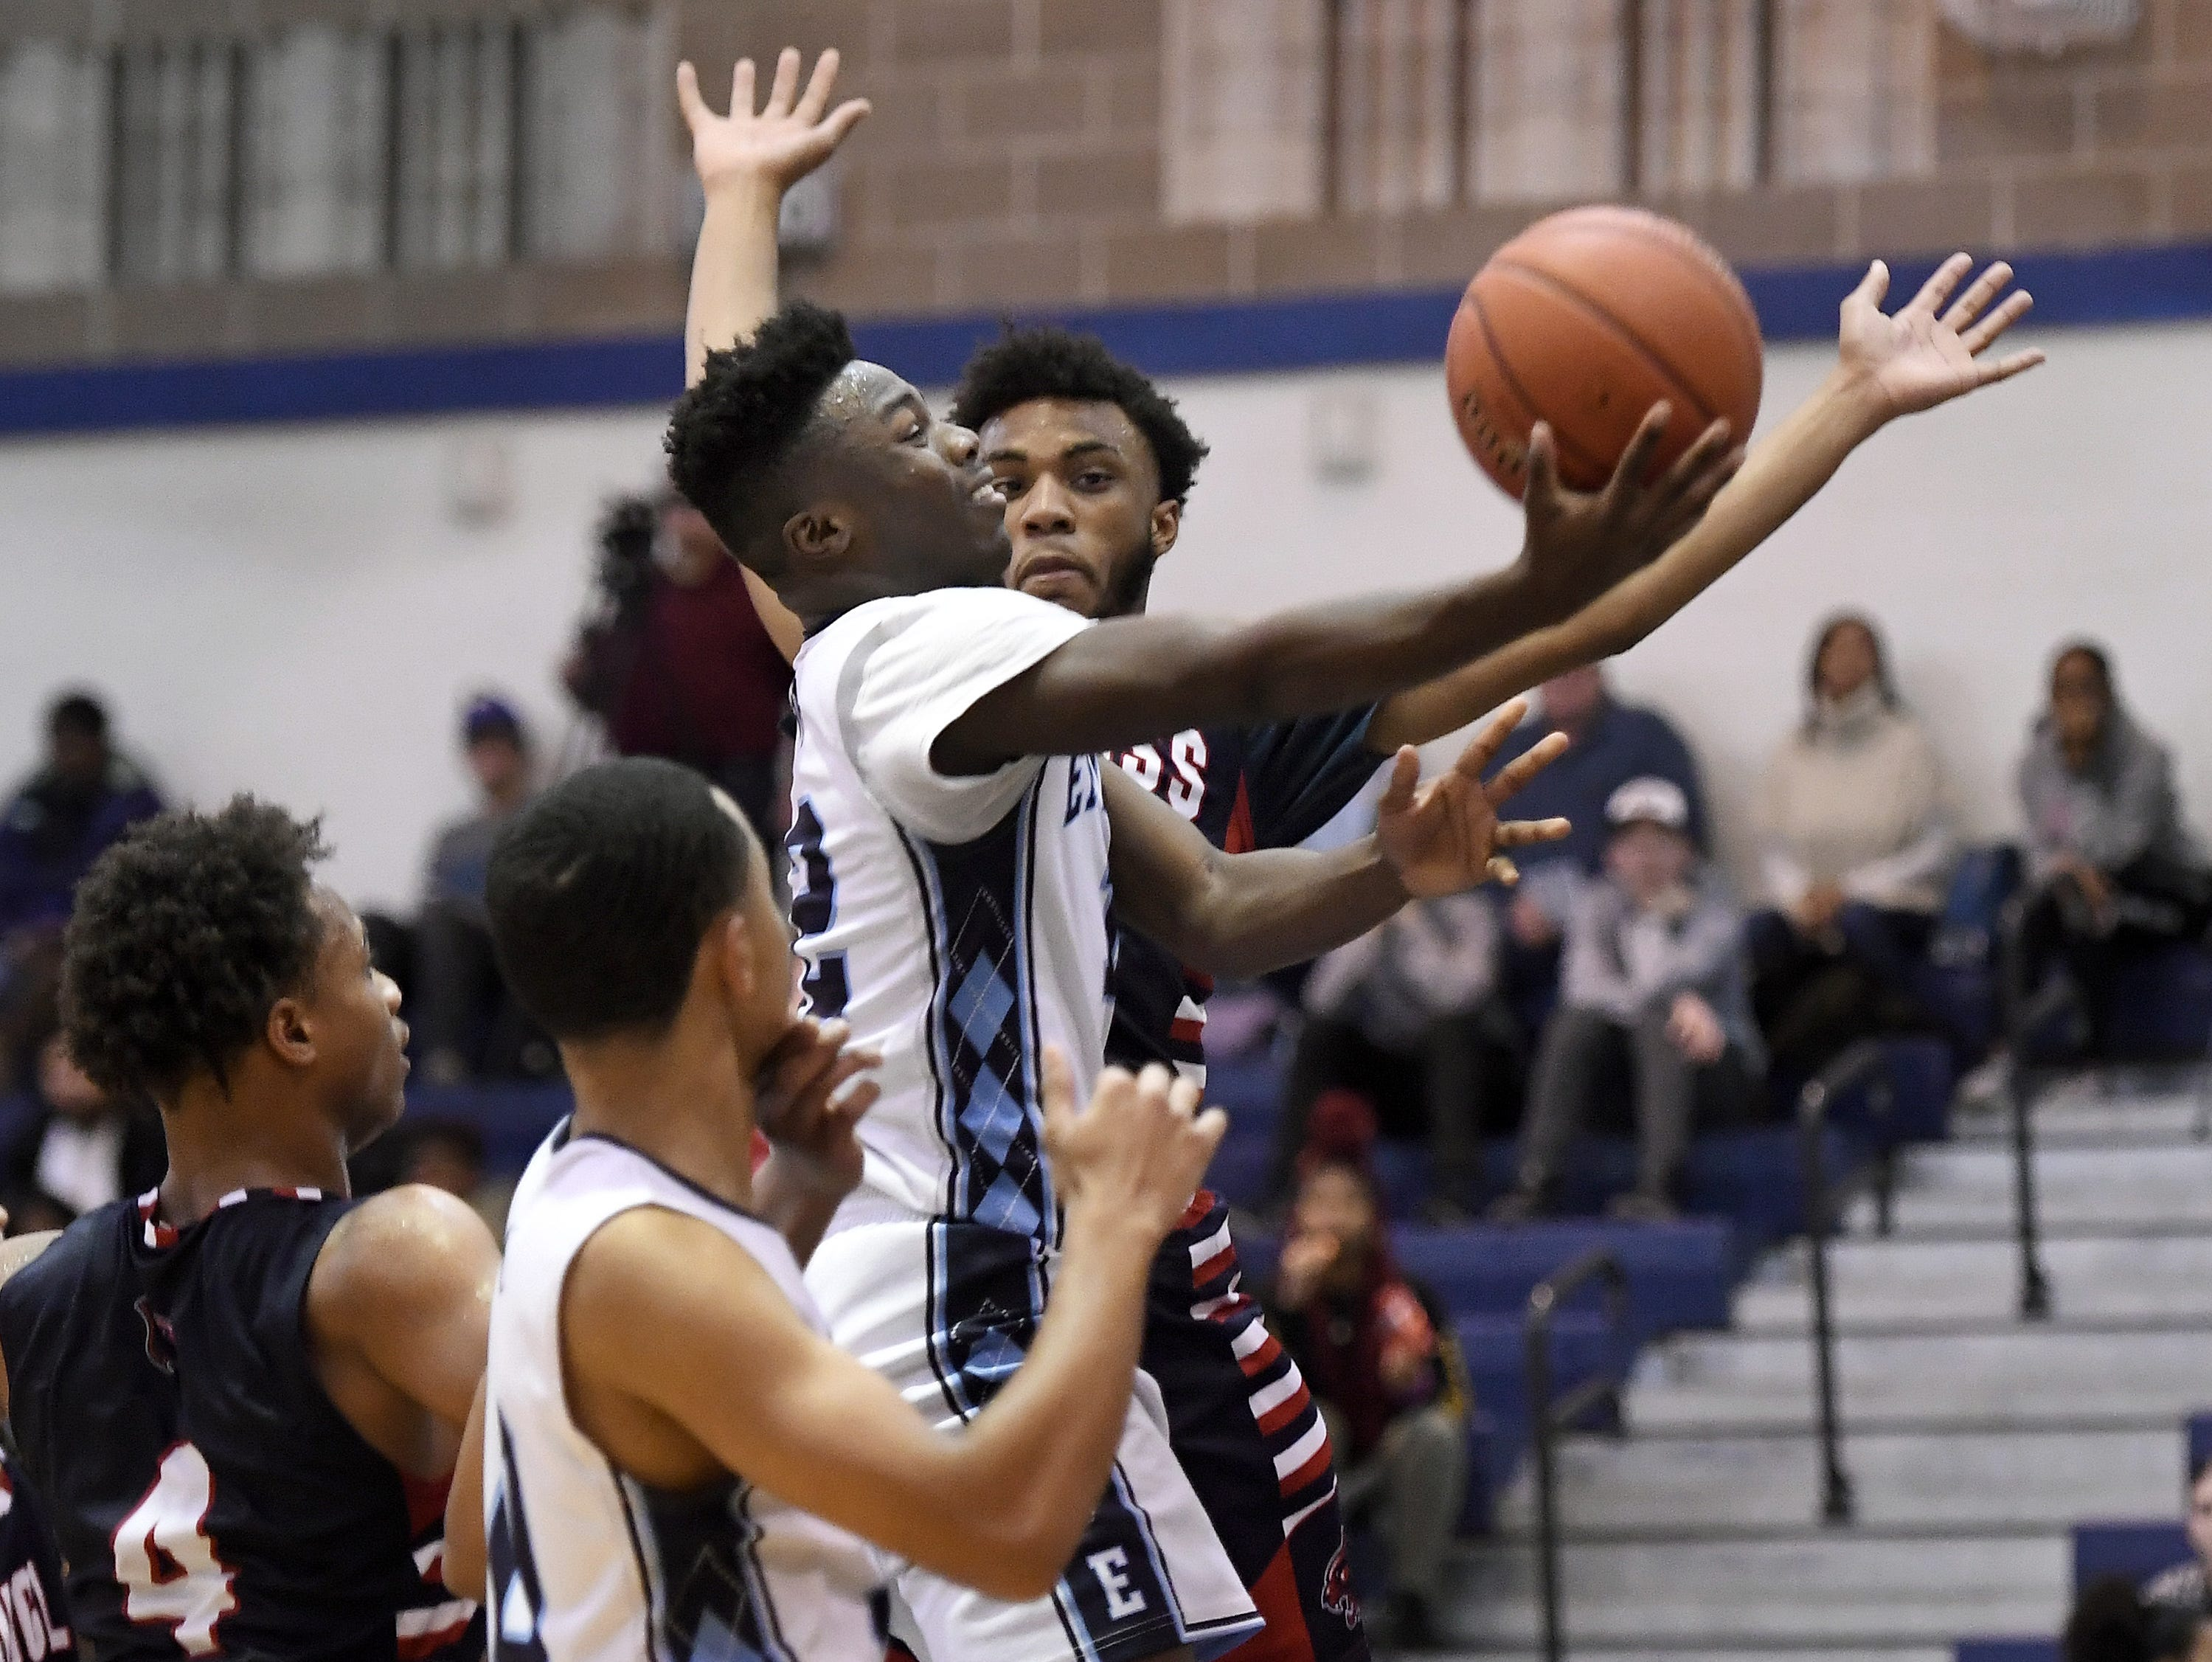 Eastridge's Jalen Rose Hannah drives to the hoop in front of NE Douglass' Nicolas Jeanty during the finals of the Al Masino Memorial Tip-Off Tournament.